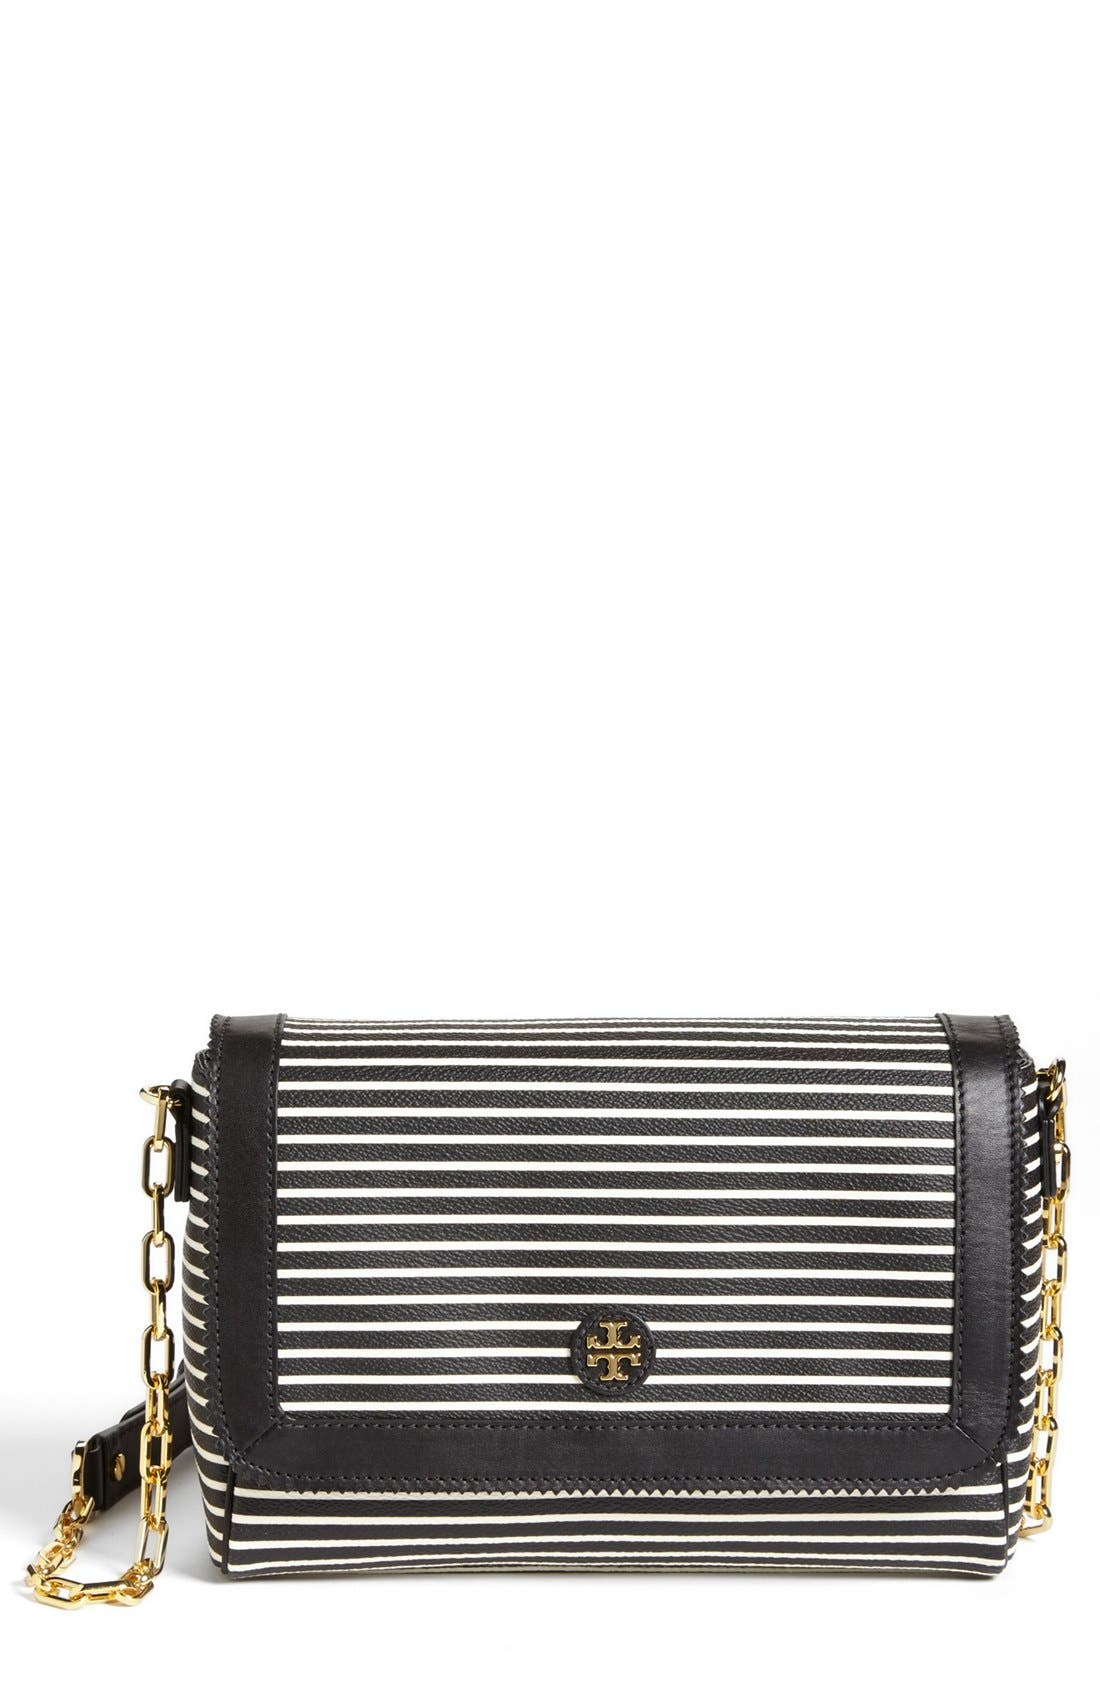 Alternate Image 1 Selected - Tory Burch 'Viva' Canvas & Leather Crossbody Bag